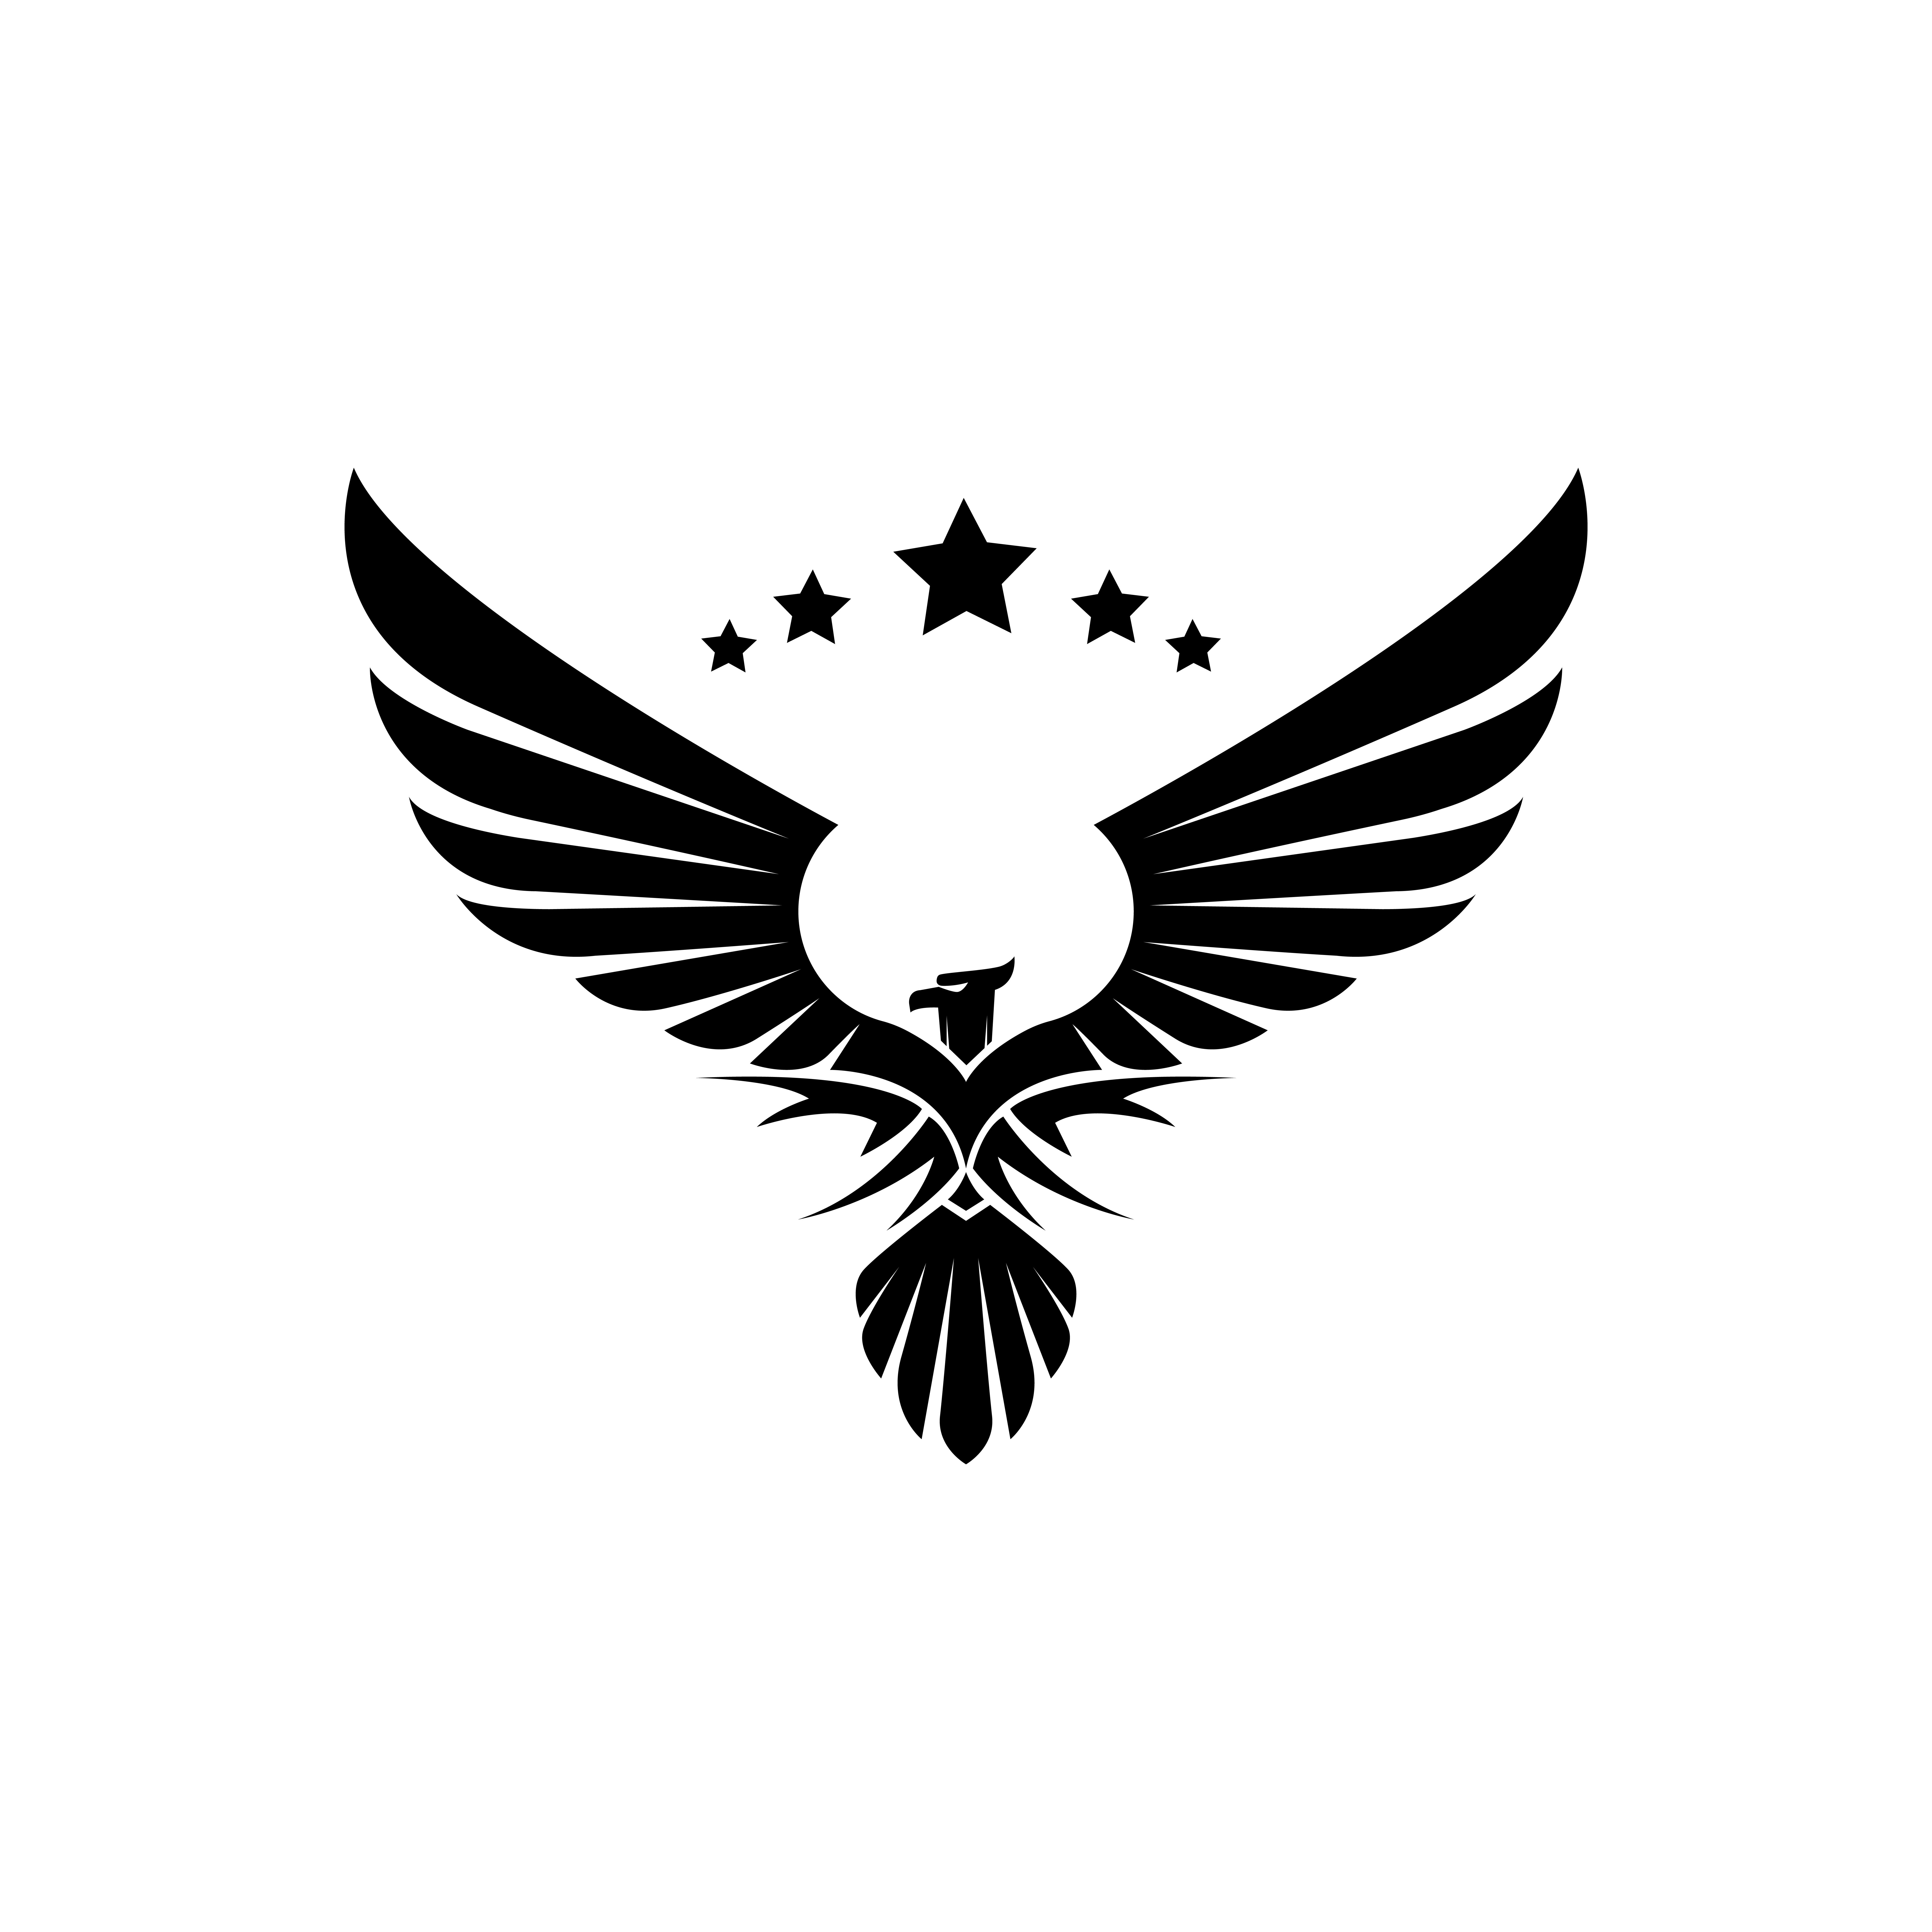 Eagle with a star symbol Vector Identity design logo